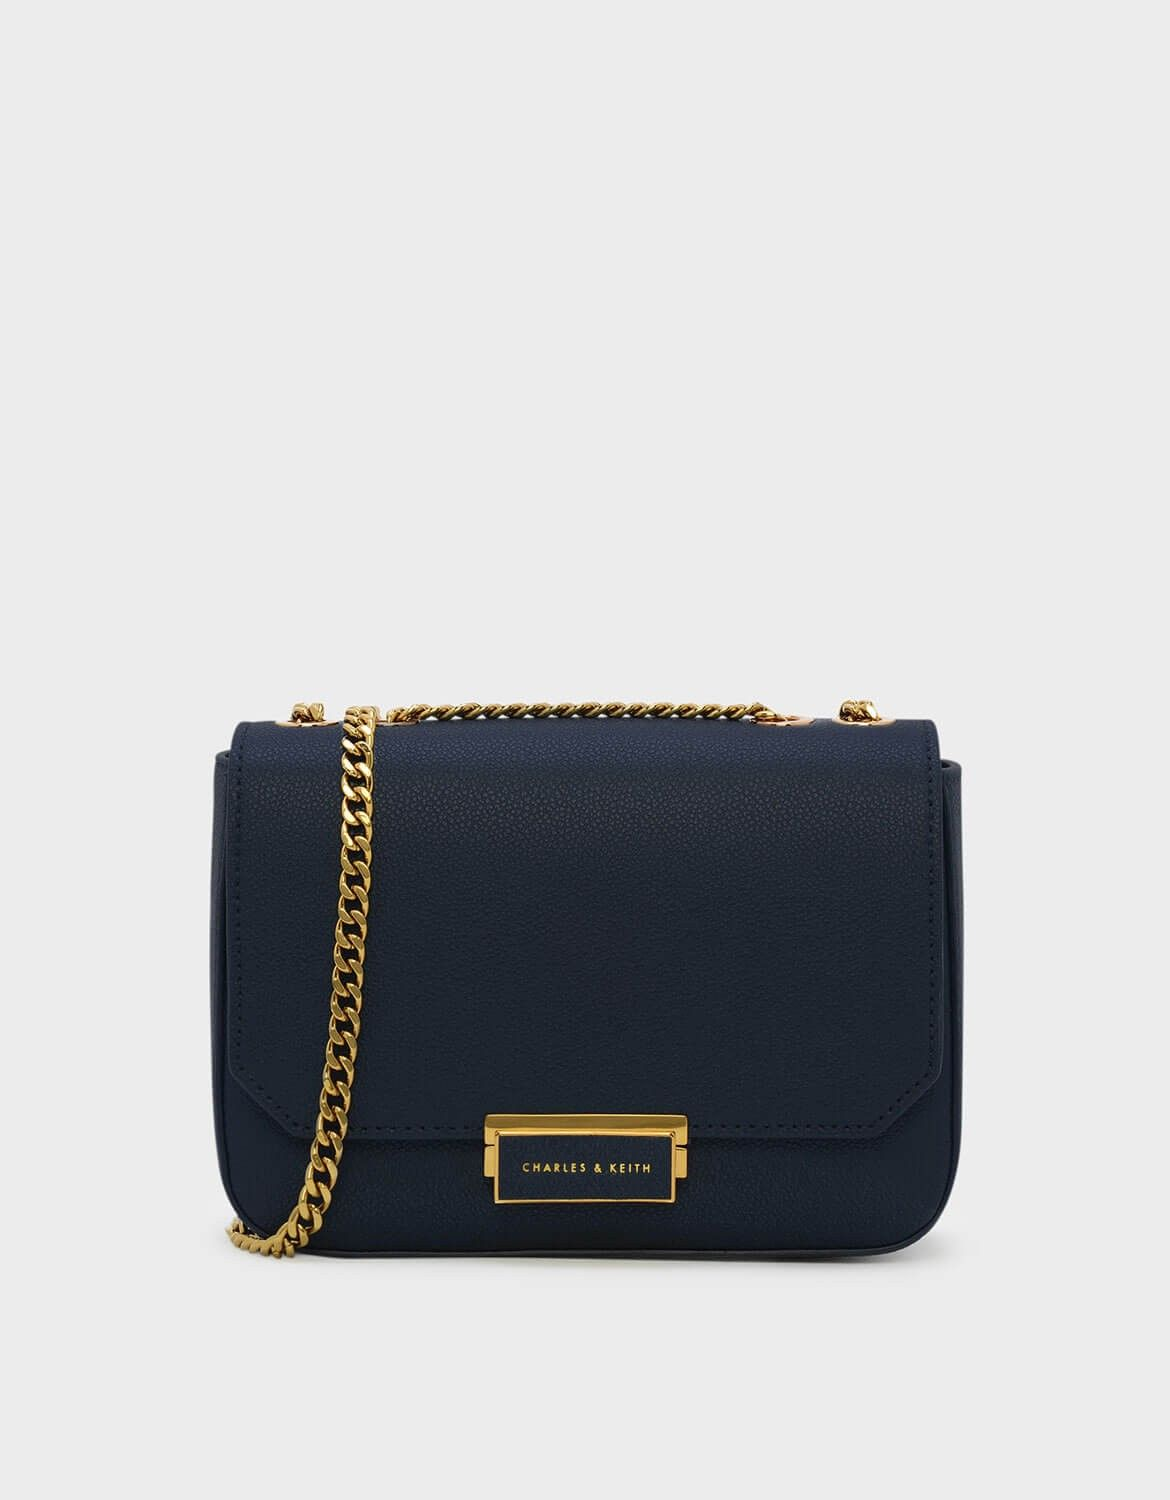 15a1c18450f CHARLES   KEITH - Bags. Navy crossbody bag featuring a front flap and a  push-lock closure. Comes with a long chain.